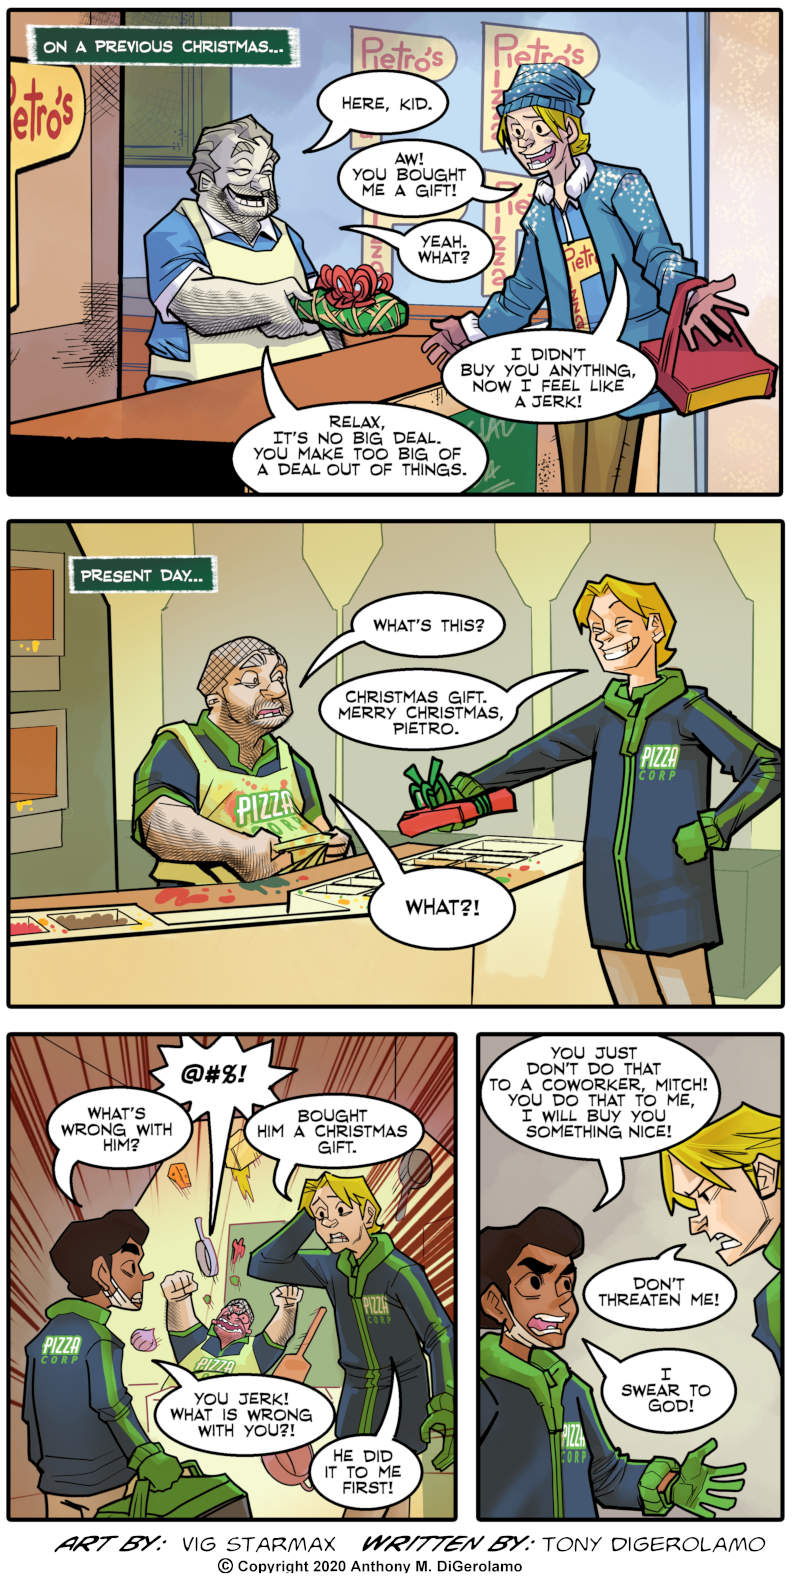 Tales of Pizza: Co-Worker Conundrum